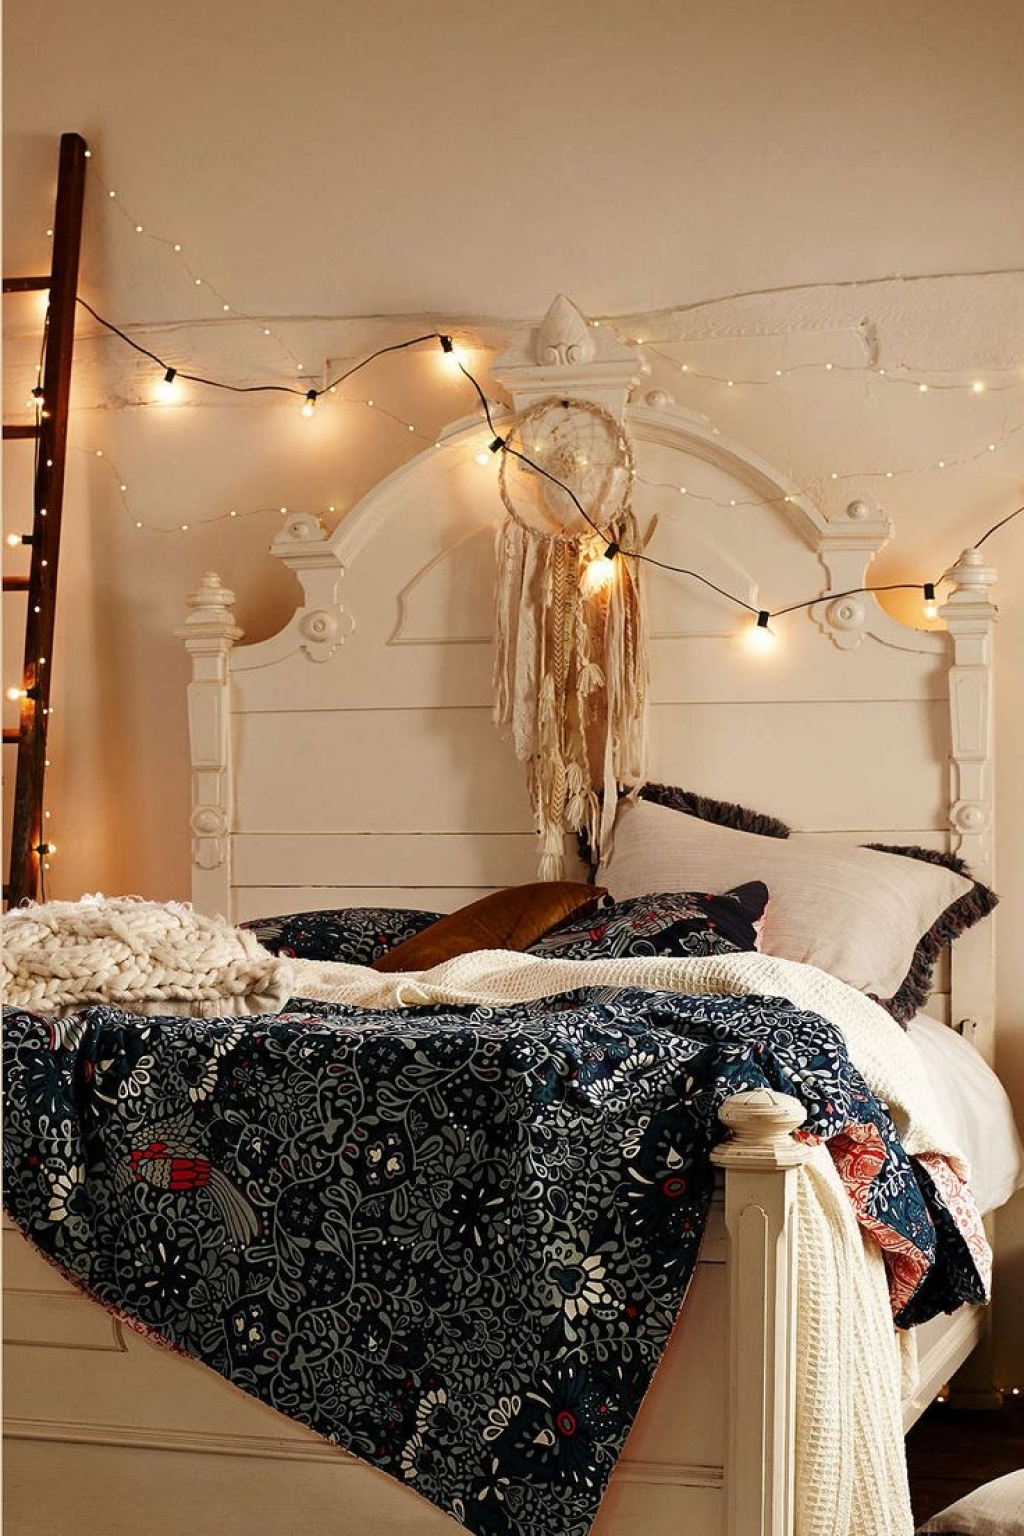 bedroom light decorations 30 ways to create a ambiance with string lights 10515